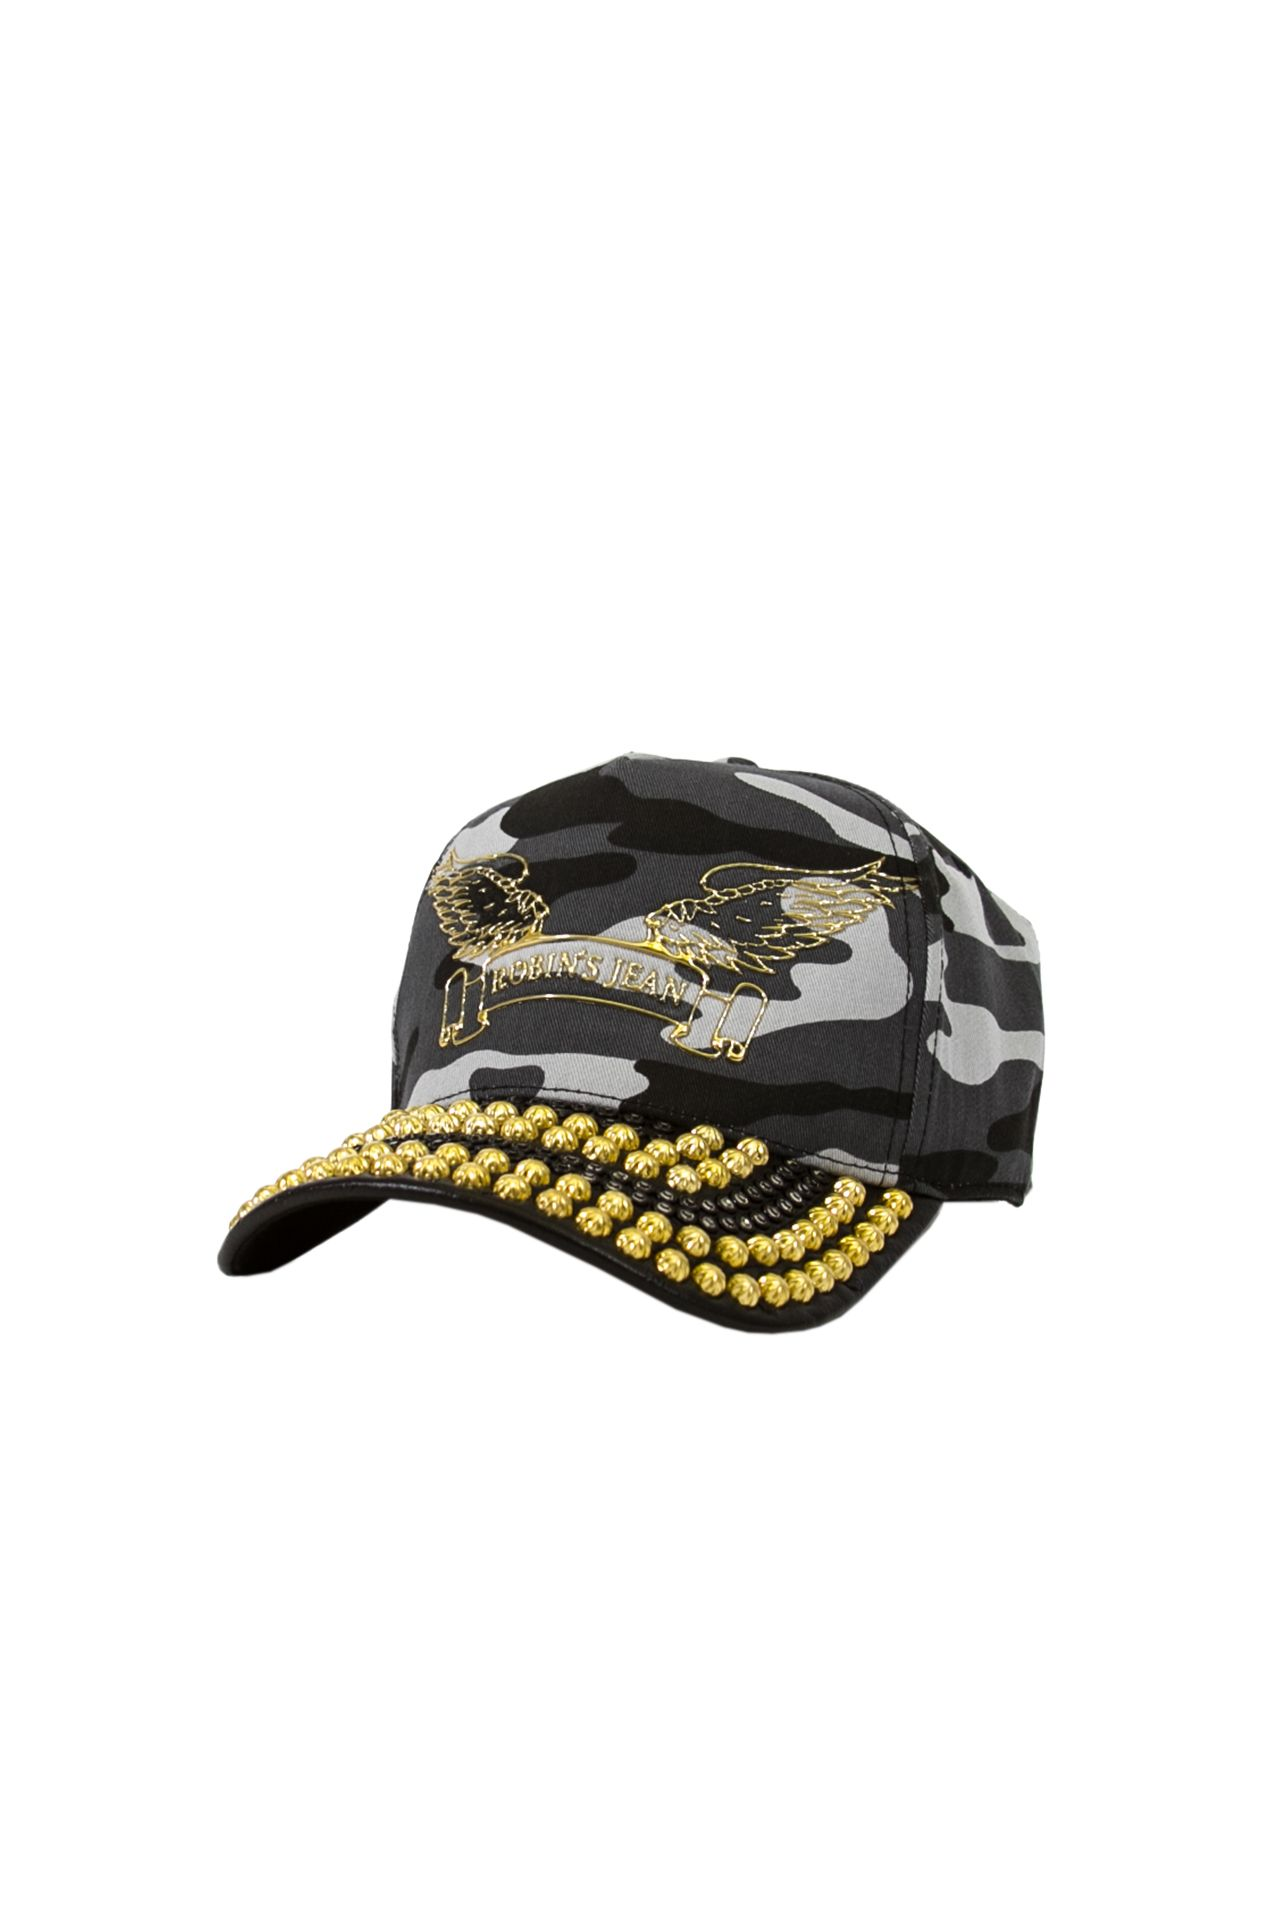 BLACK CAMO CAP WITH LEATHER LOOK BILL STUDDED